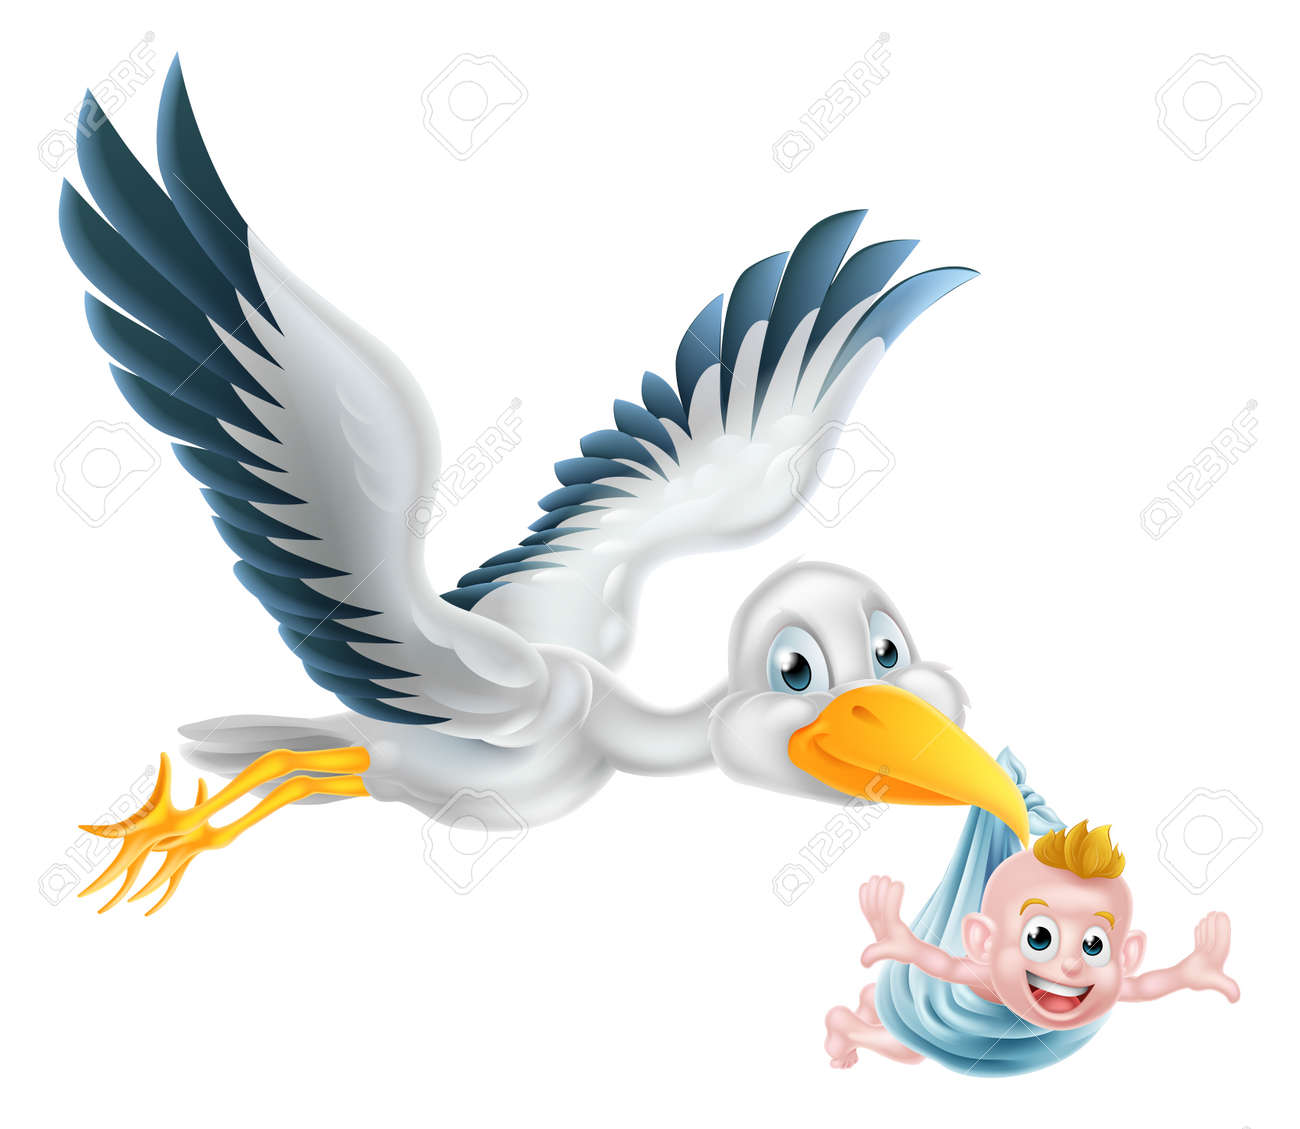 7 380 stork stock illustrations cliparts and royalty free stork vectors rh 123rf com free clipart stork delivering baby free stock clipart